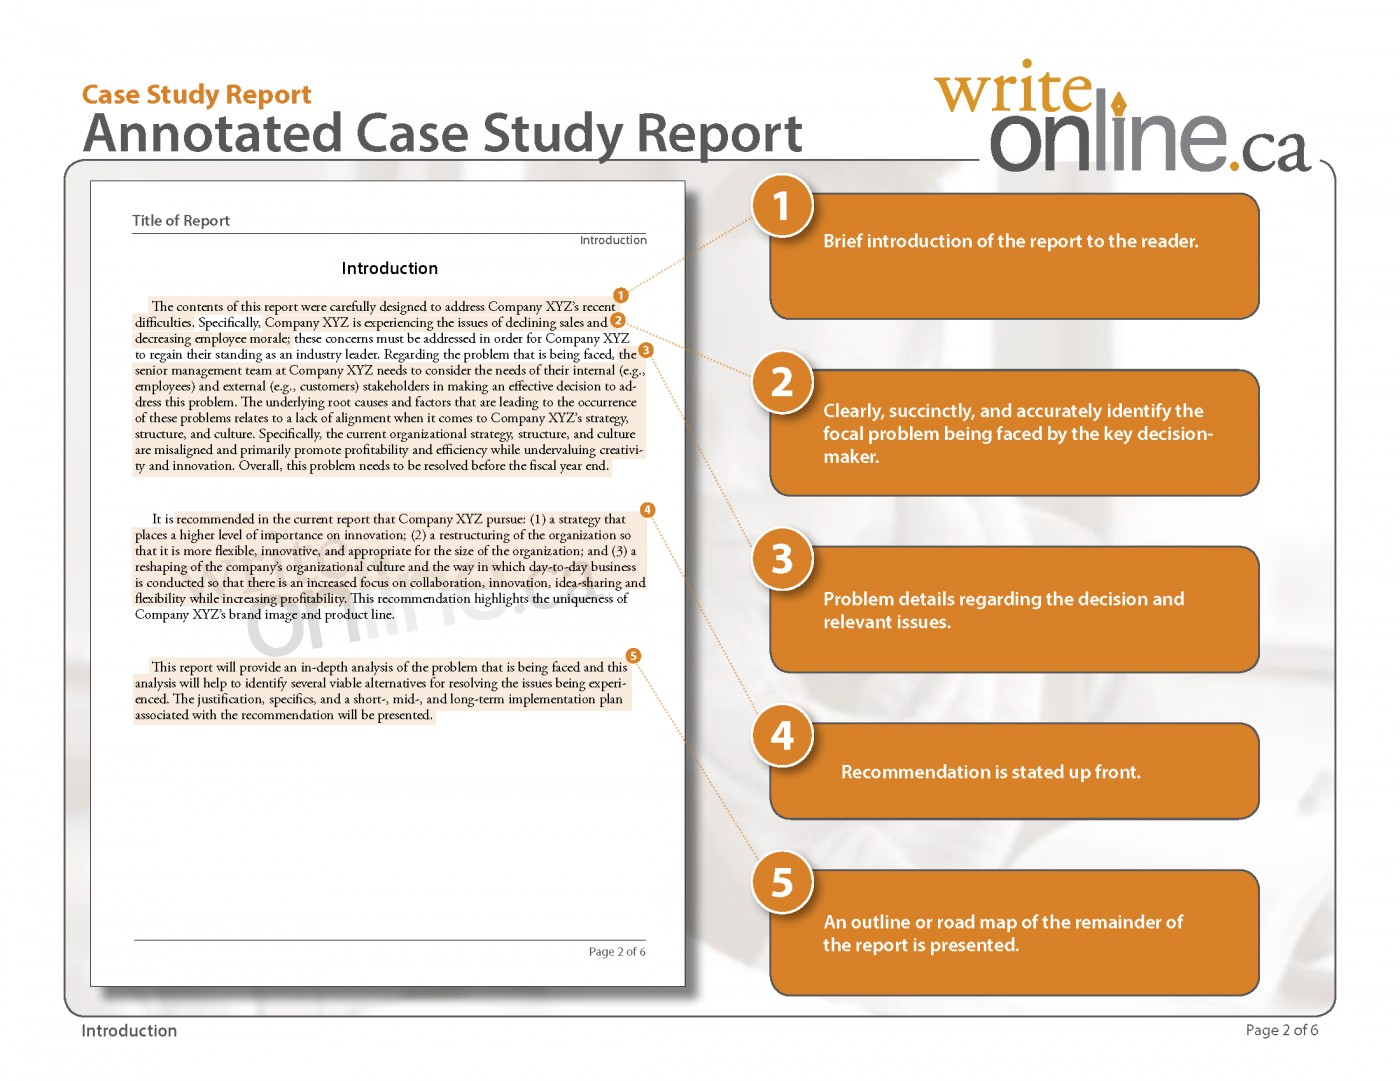 015 Casestudy Annotatedfull Page 2 Research Paper Parts Of Staggering Pdf And Its Definition Preliminary A 1400